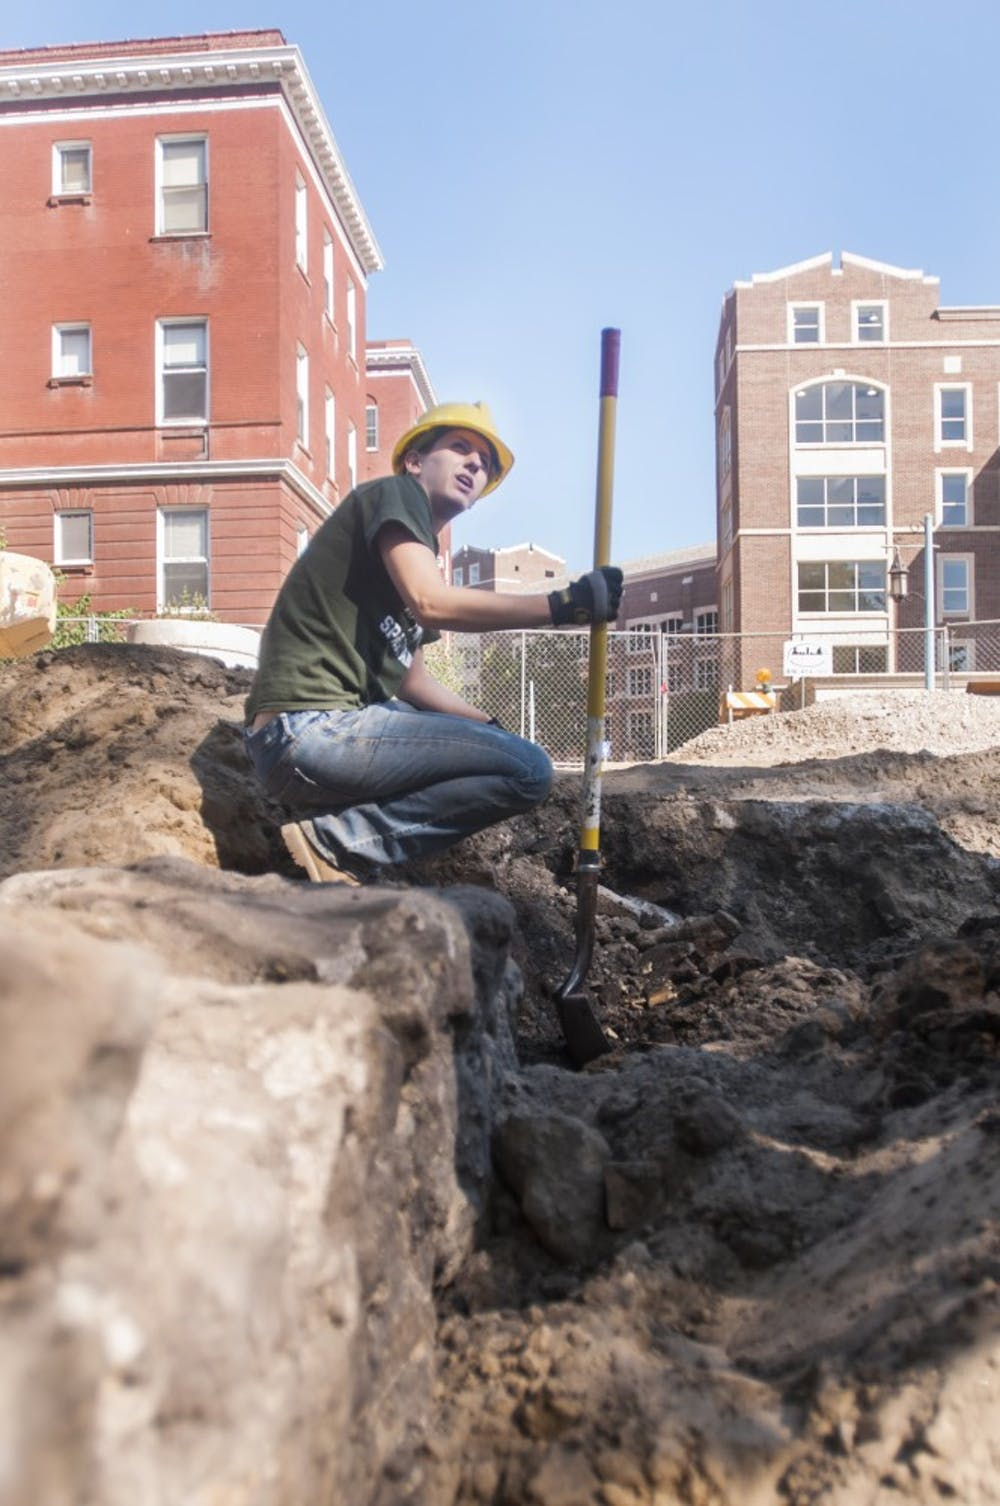 Katy Meyers, campus archeologist and graduate student digs at the site of the foundation of an old boiler room Tuesday, July 10, 2012 behind Morrill Hall.  Construction workers came across the structure last week while working on campus. Adam Toolin/The State News